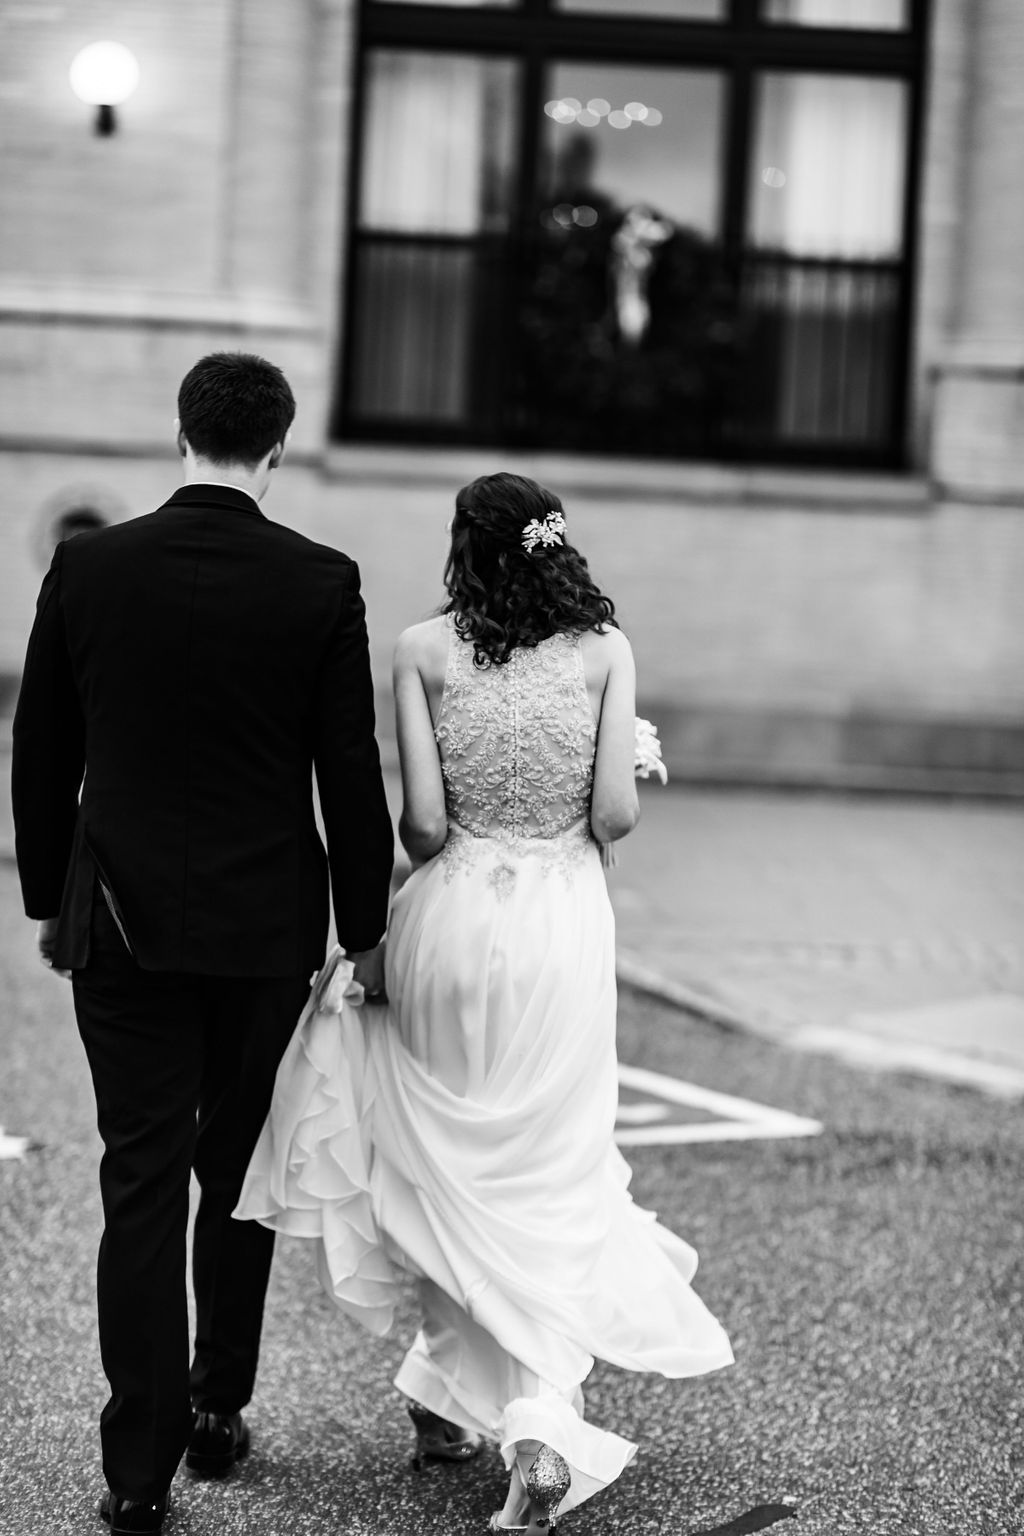 When the groom carries the brides dress so she doesn't trip - Pearl Weddings & Events